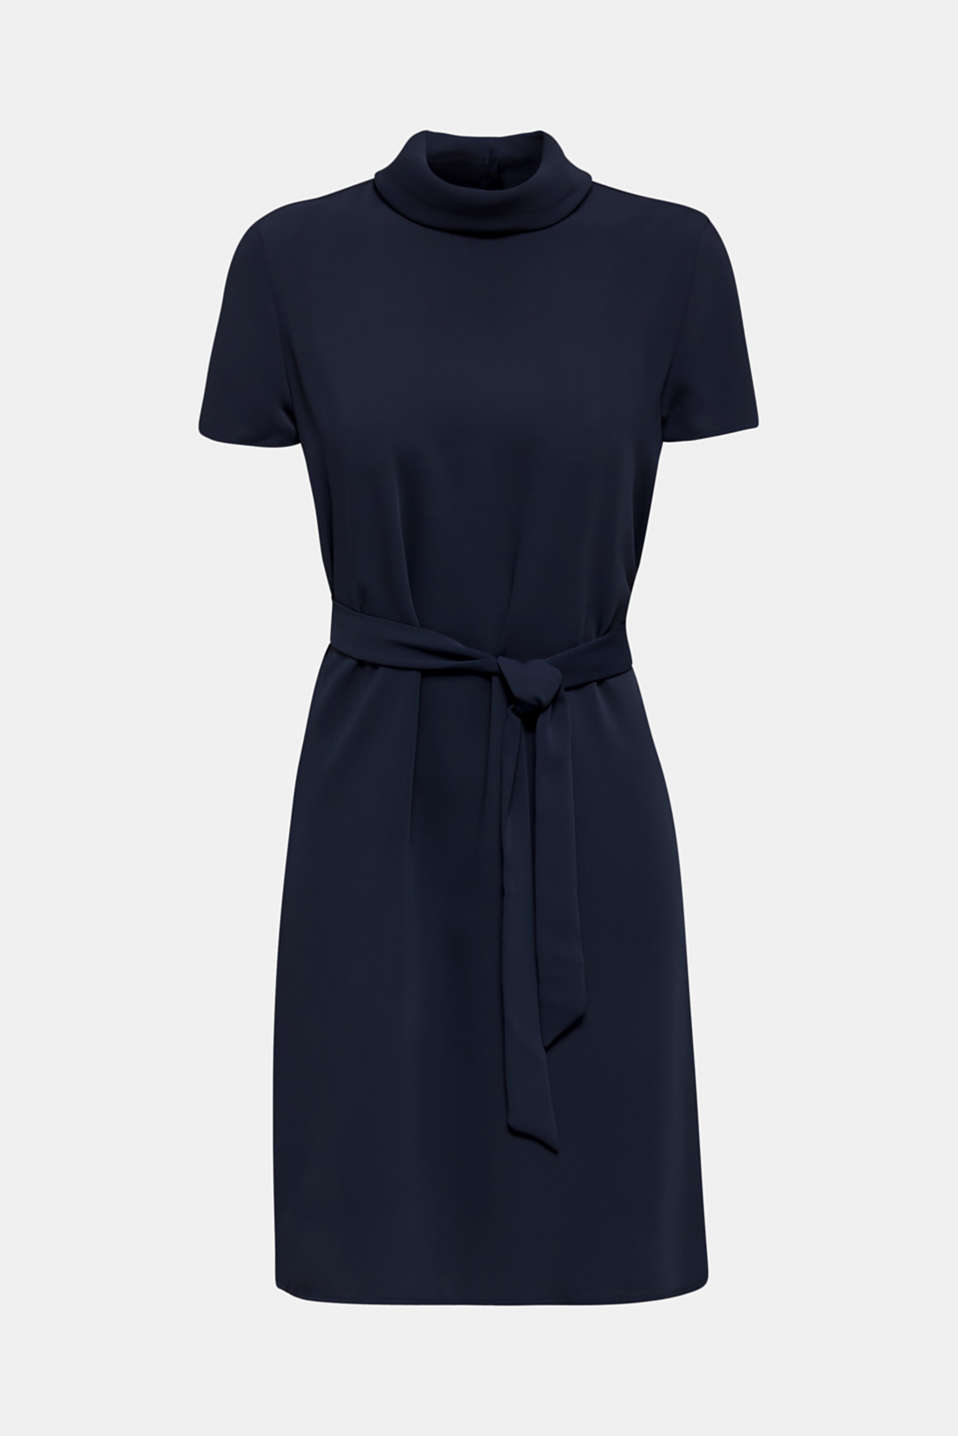 Cloth polo neck dress, NAVY, detail image number 5